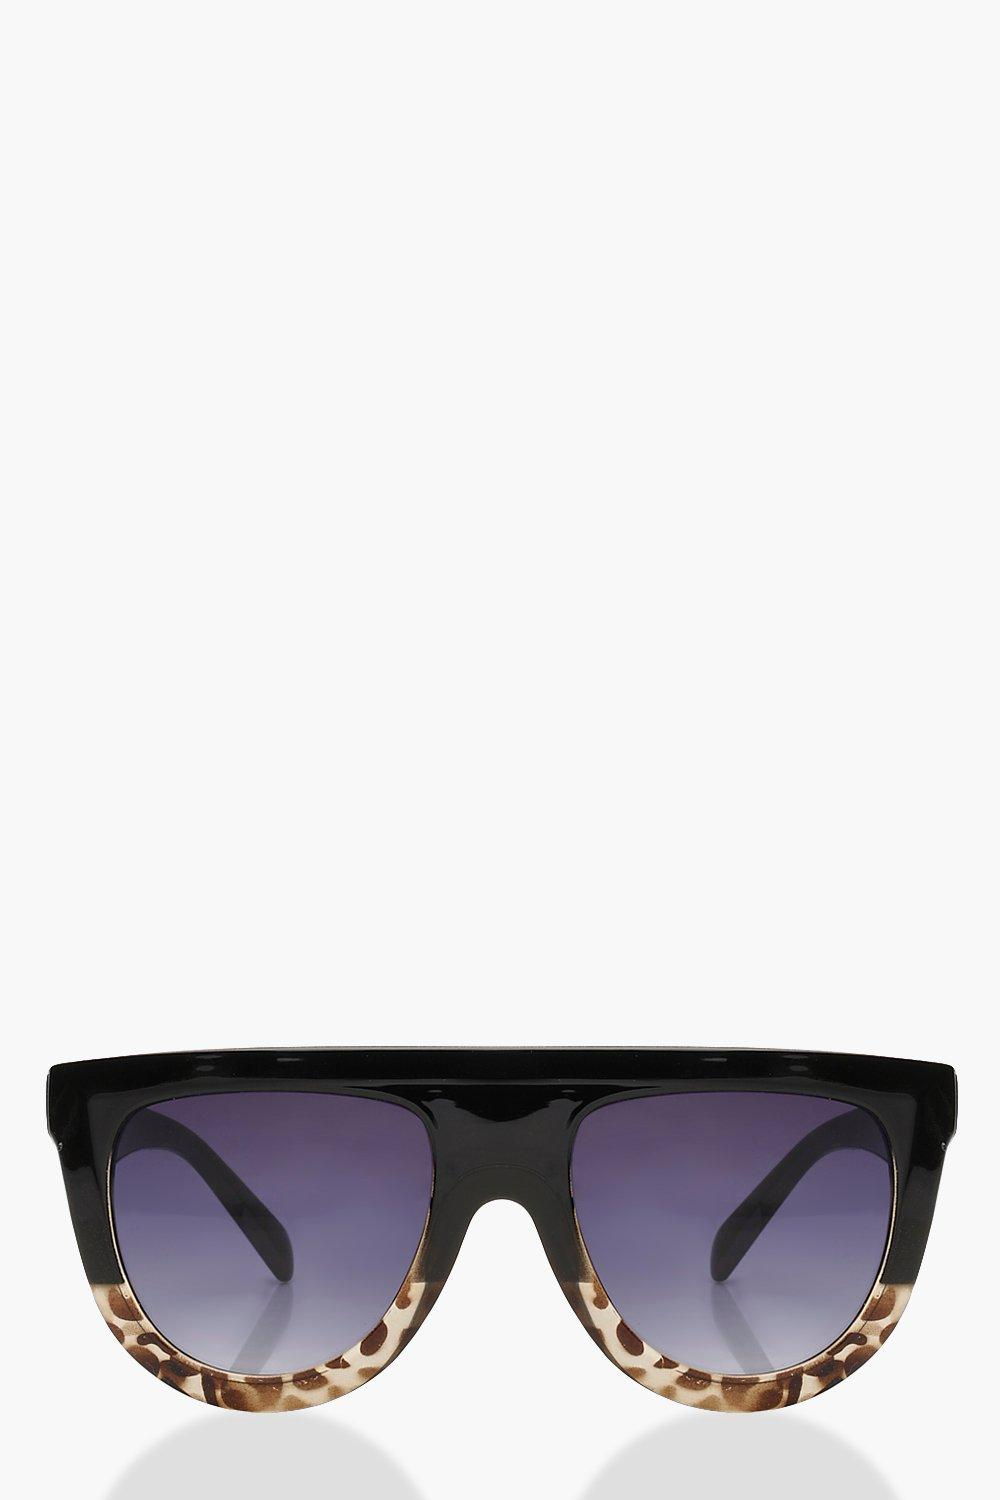 71038177bb Leopard Oversized Flat Top Sunglasses. Hover to zoom